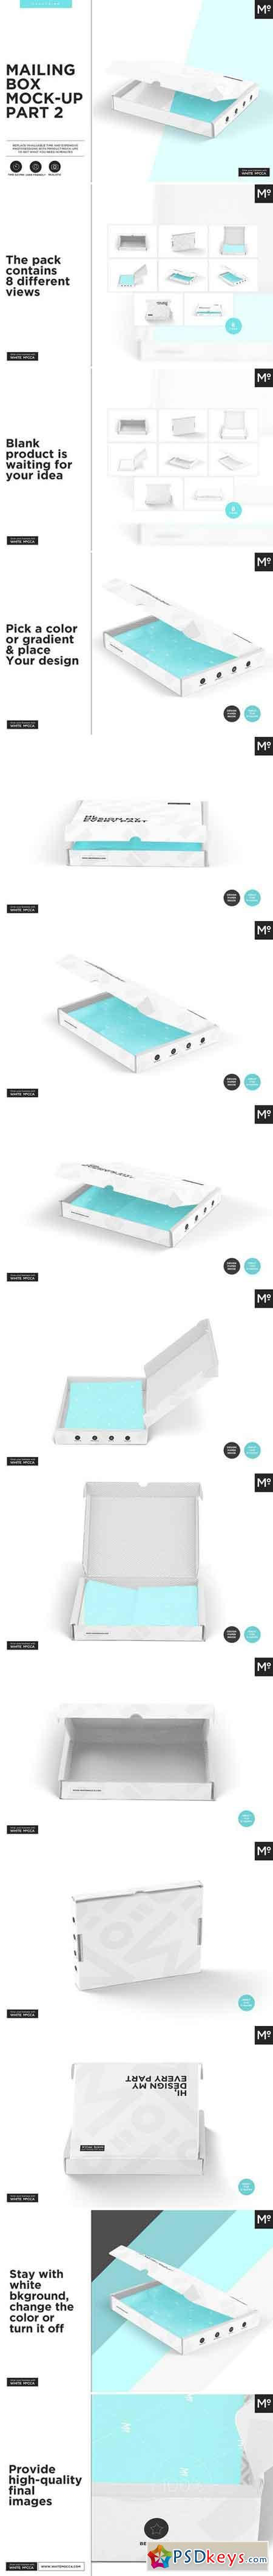 Mailing Boxes Mock-up Part 2 1543254